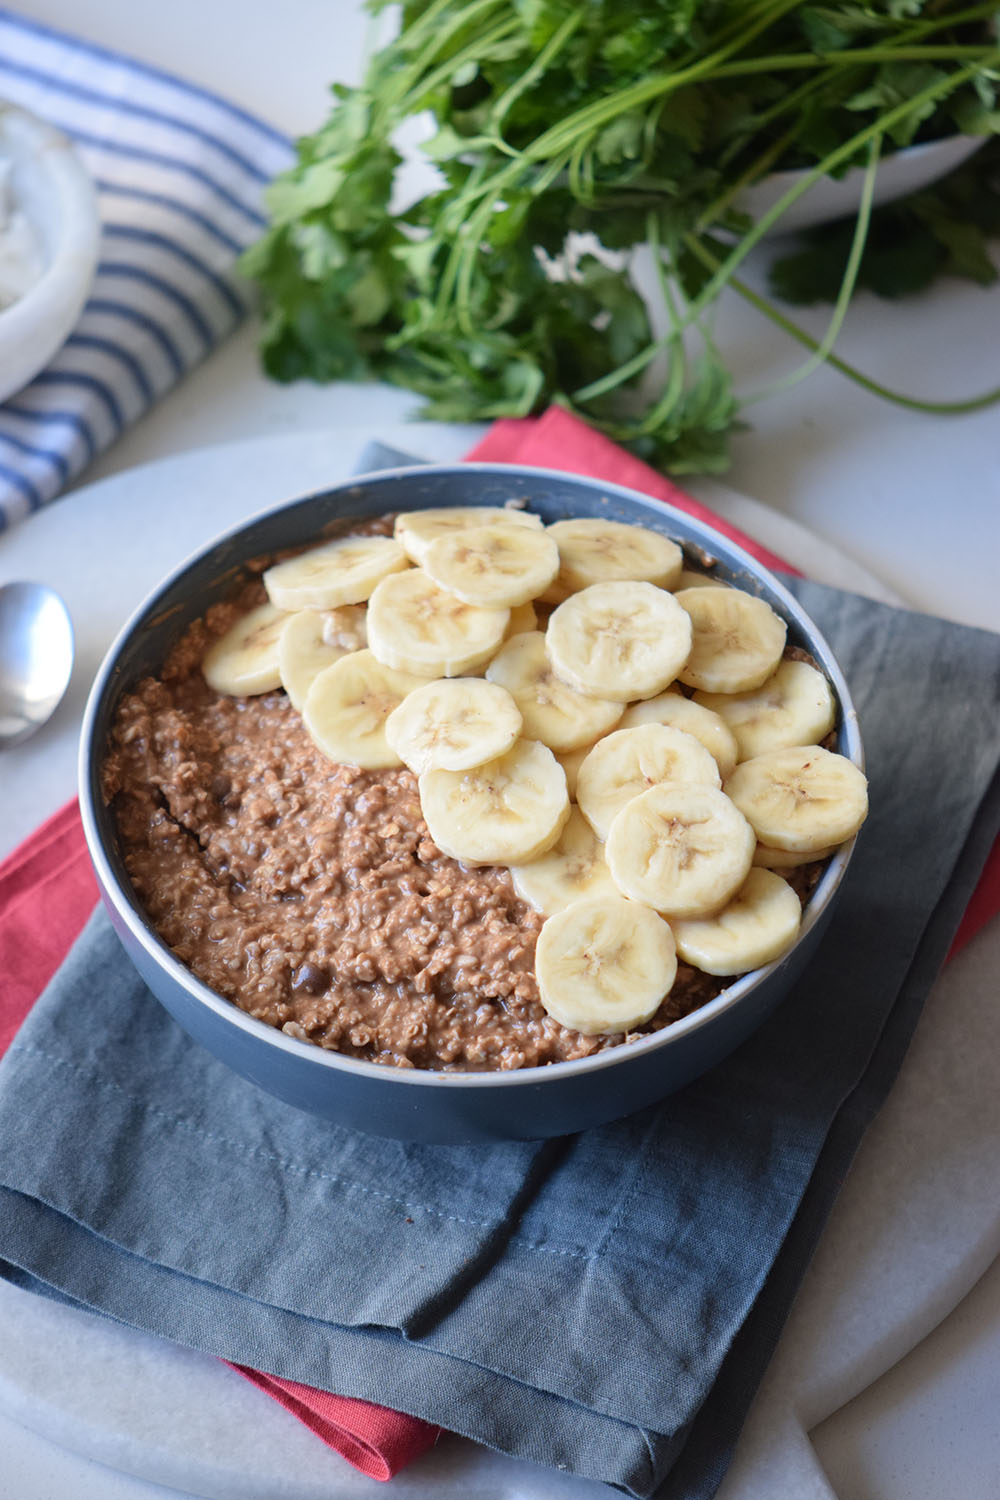 Caramel Banana Oatmeal Recipe